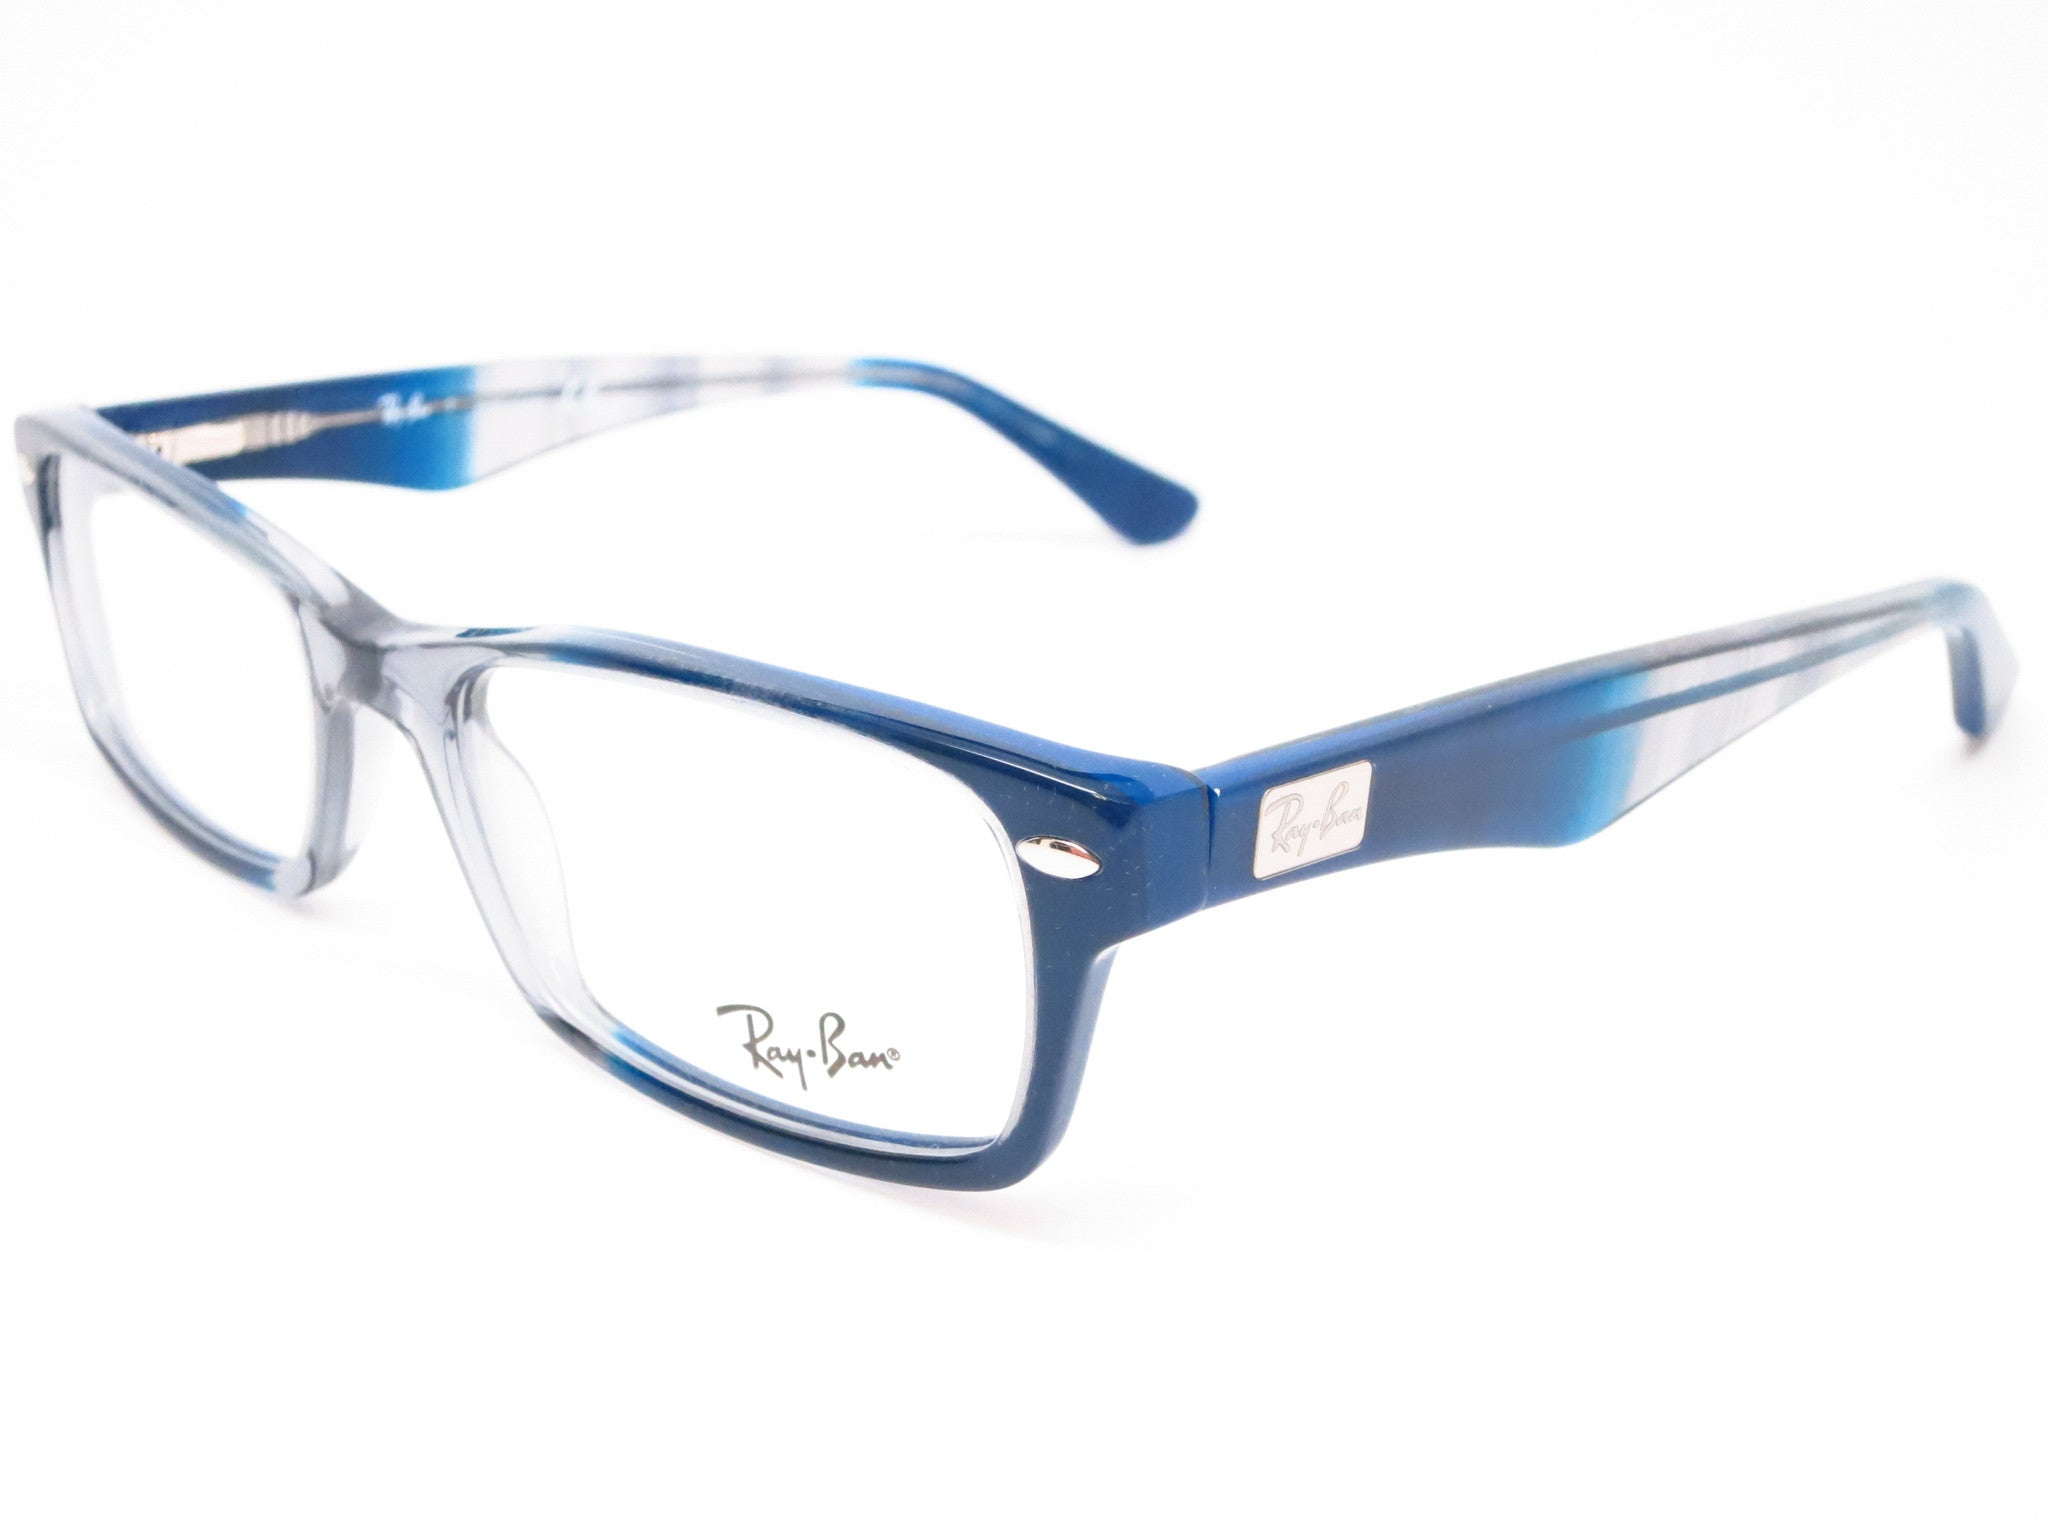 91f89ae06f9ac Ray-Ban RB 5206 Gradient Grey on Blue 5516 Eyeglasses - Eye Heart Shades -